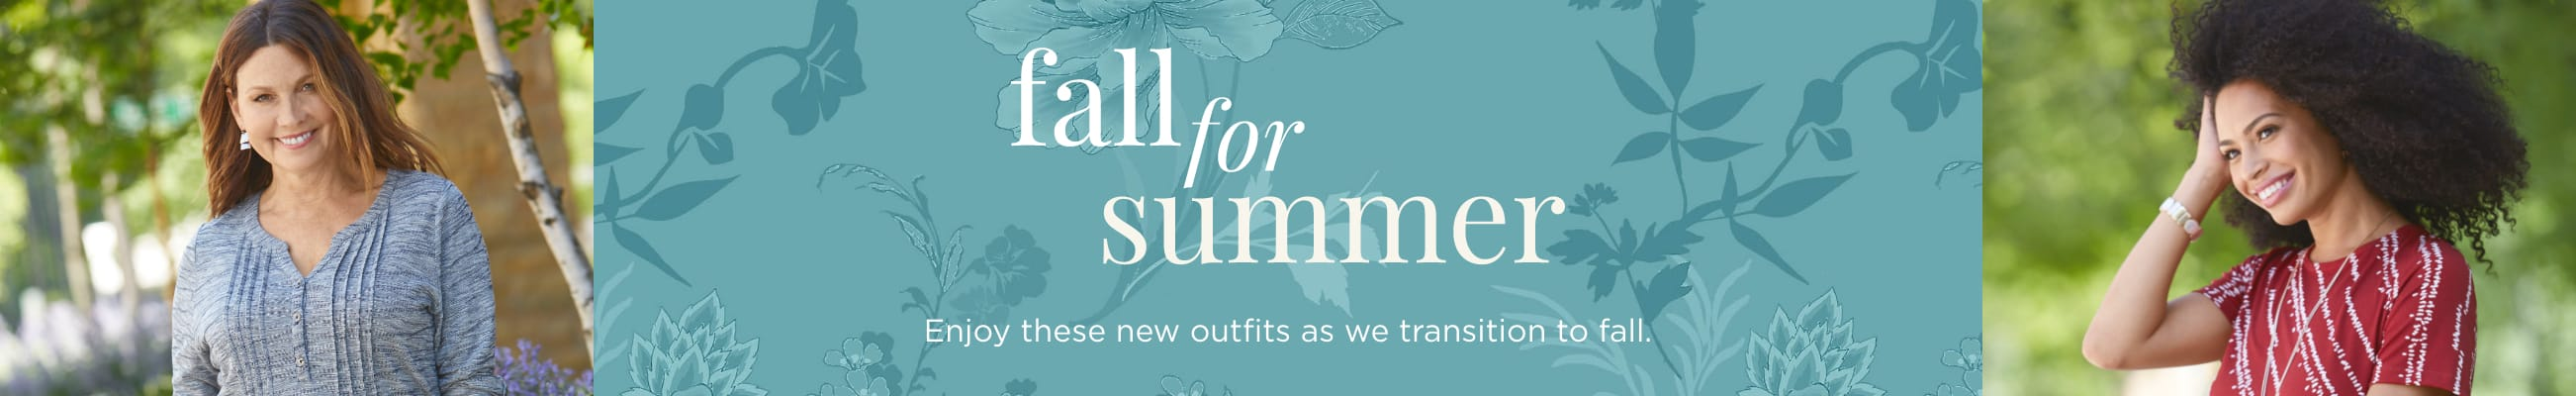 Fall for Summer. Enjoy these new outfits as we transition to fall.